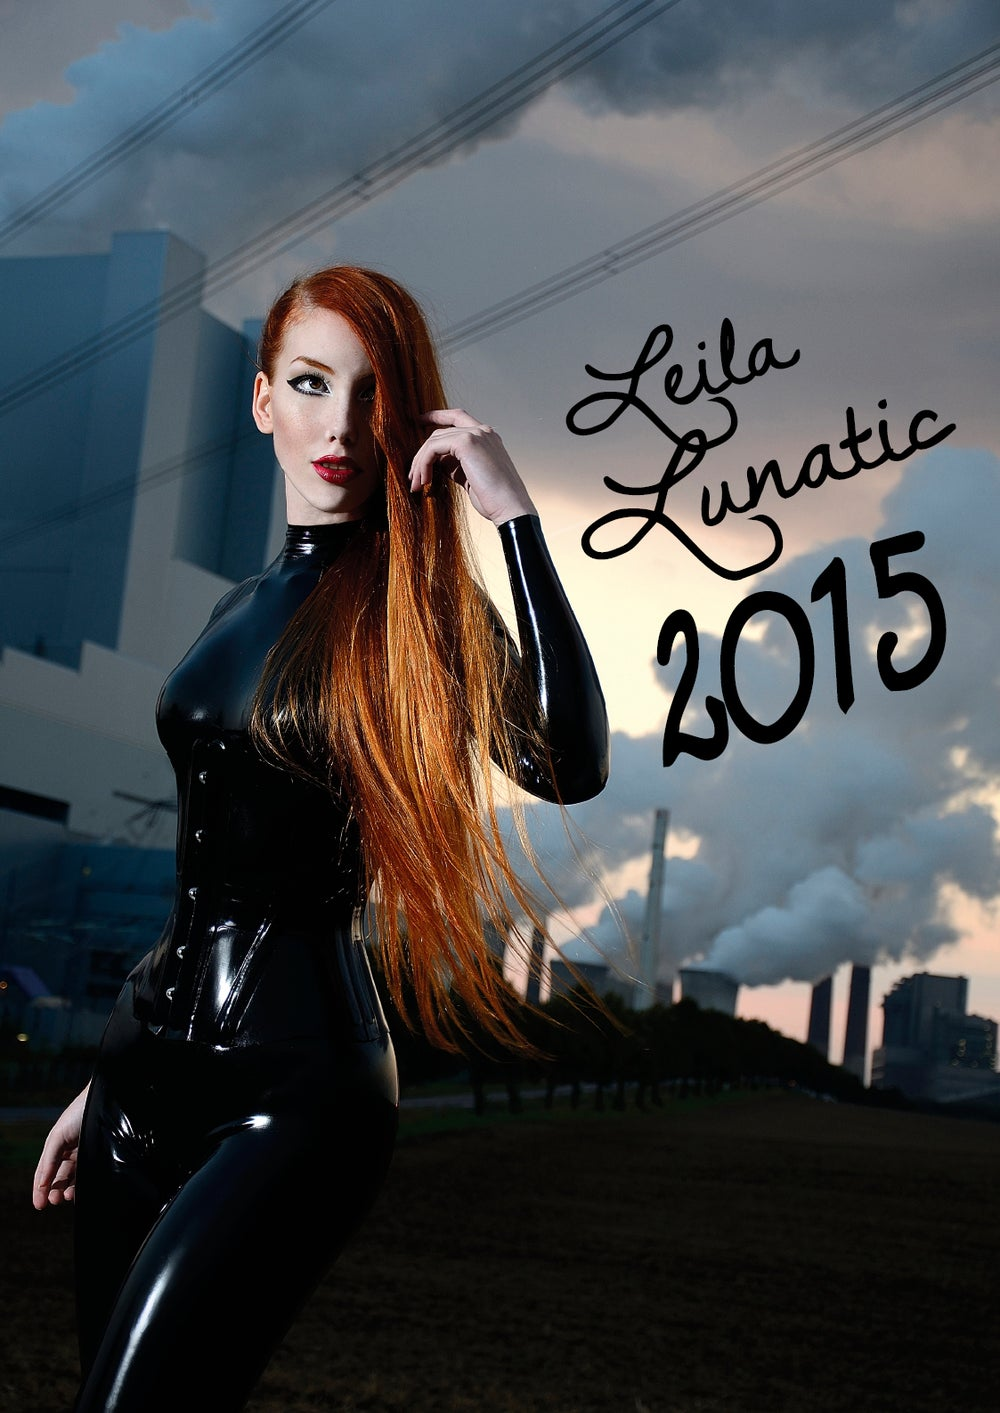 Image of Official LEILA LUNATIC calendar 2015